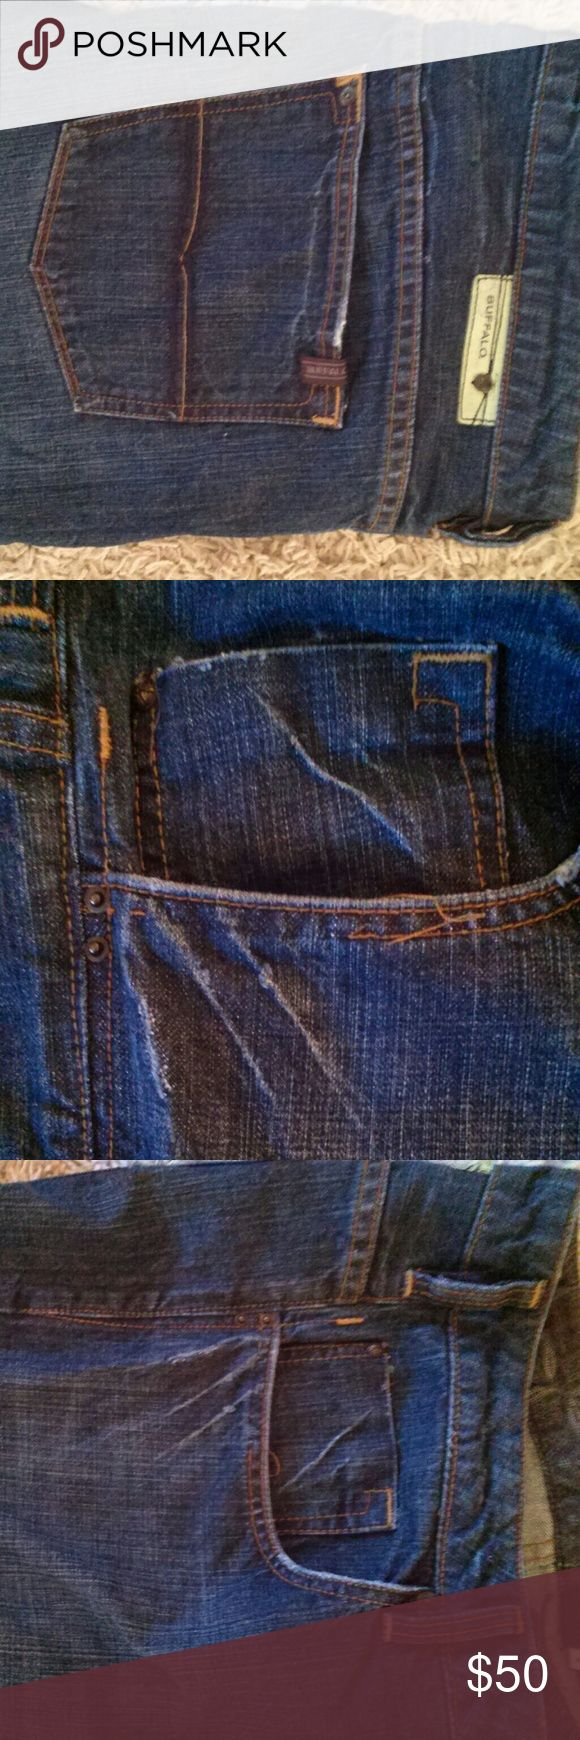 Men's Buffalo Jeans Men's Buffalo jeans Size: 38 x 32 Good shape- some thread coming off of pocket(shown in picture) 100% Cotton  Shipping will be 1-2 days!  MAKE ME AN OFFER☺ Buffalo David Bitton Jeans